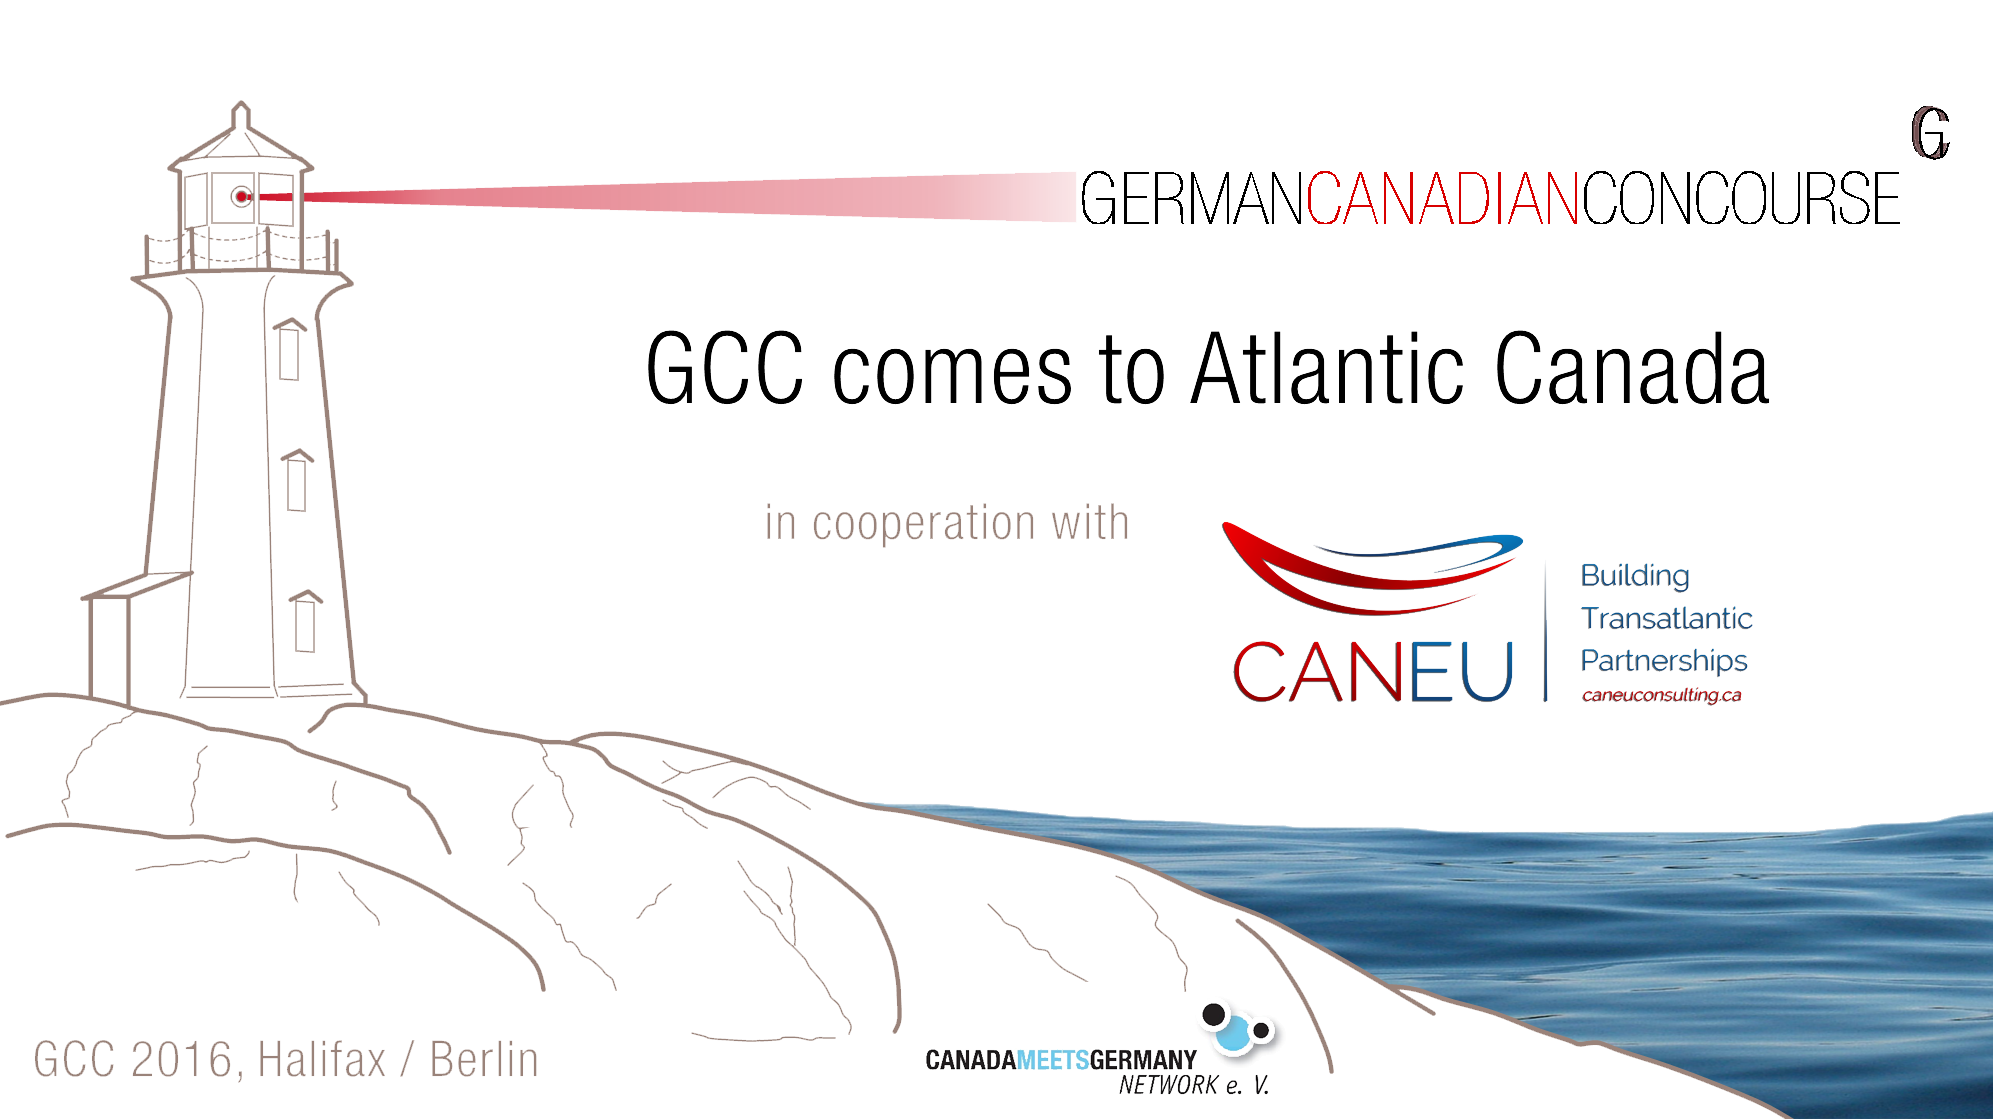 GCC comes to Atlantic Canada